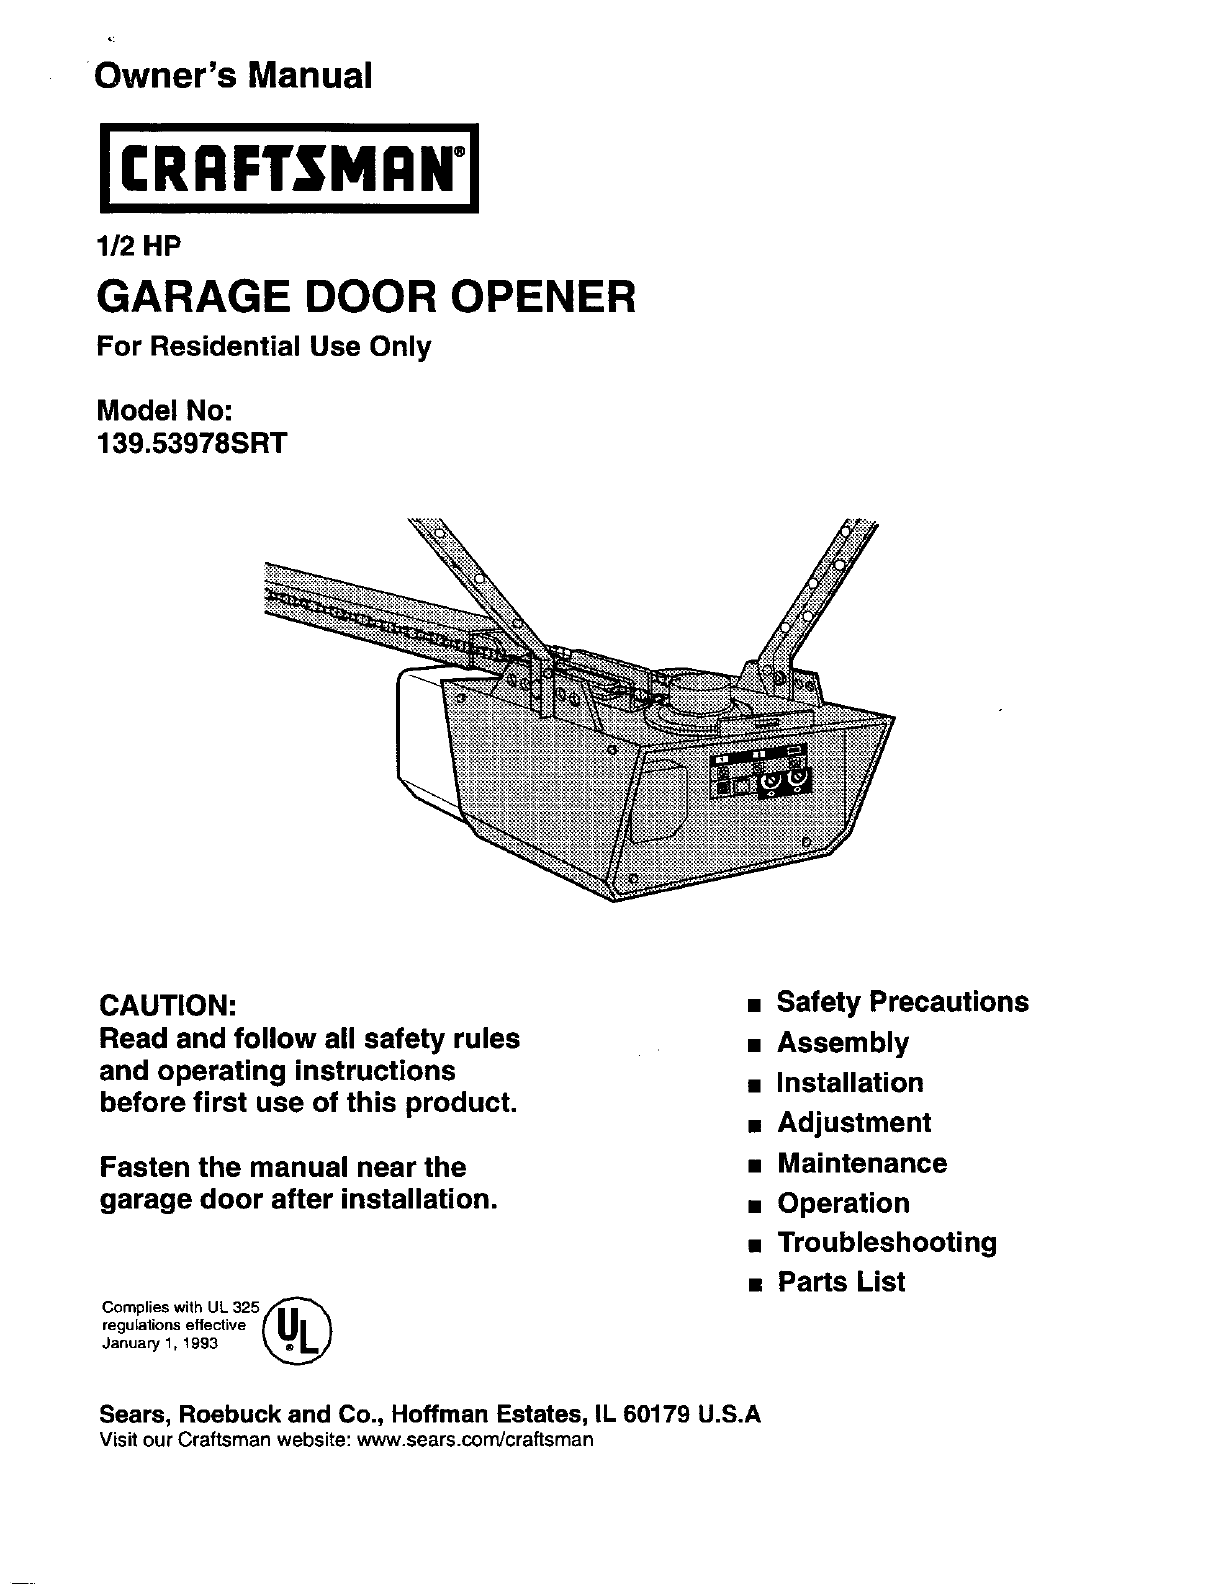 0f05b938 d0cb 4872 aeee 96ef63eab4f3 bg1 craftsman garage door opener 139 53978srt user guide craftsman garage door wiring diagram at creativeand.co